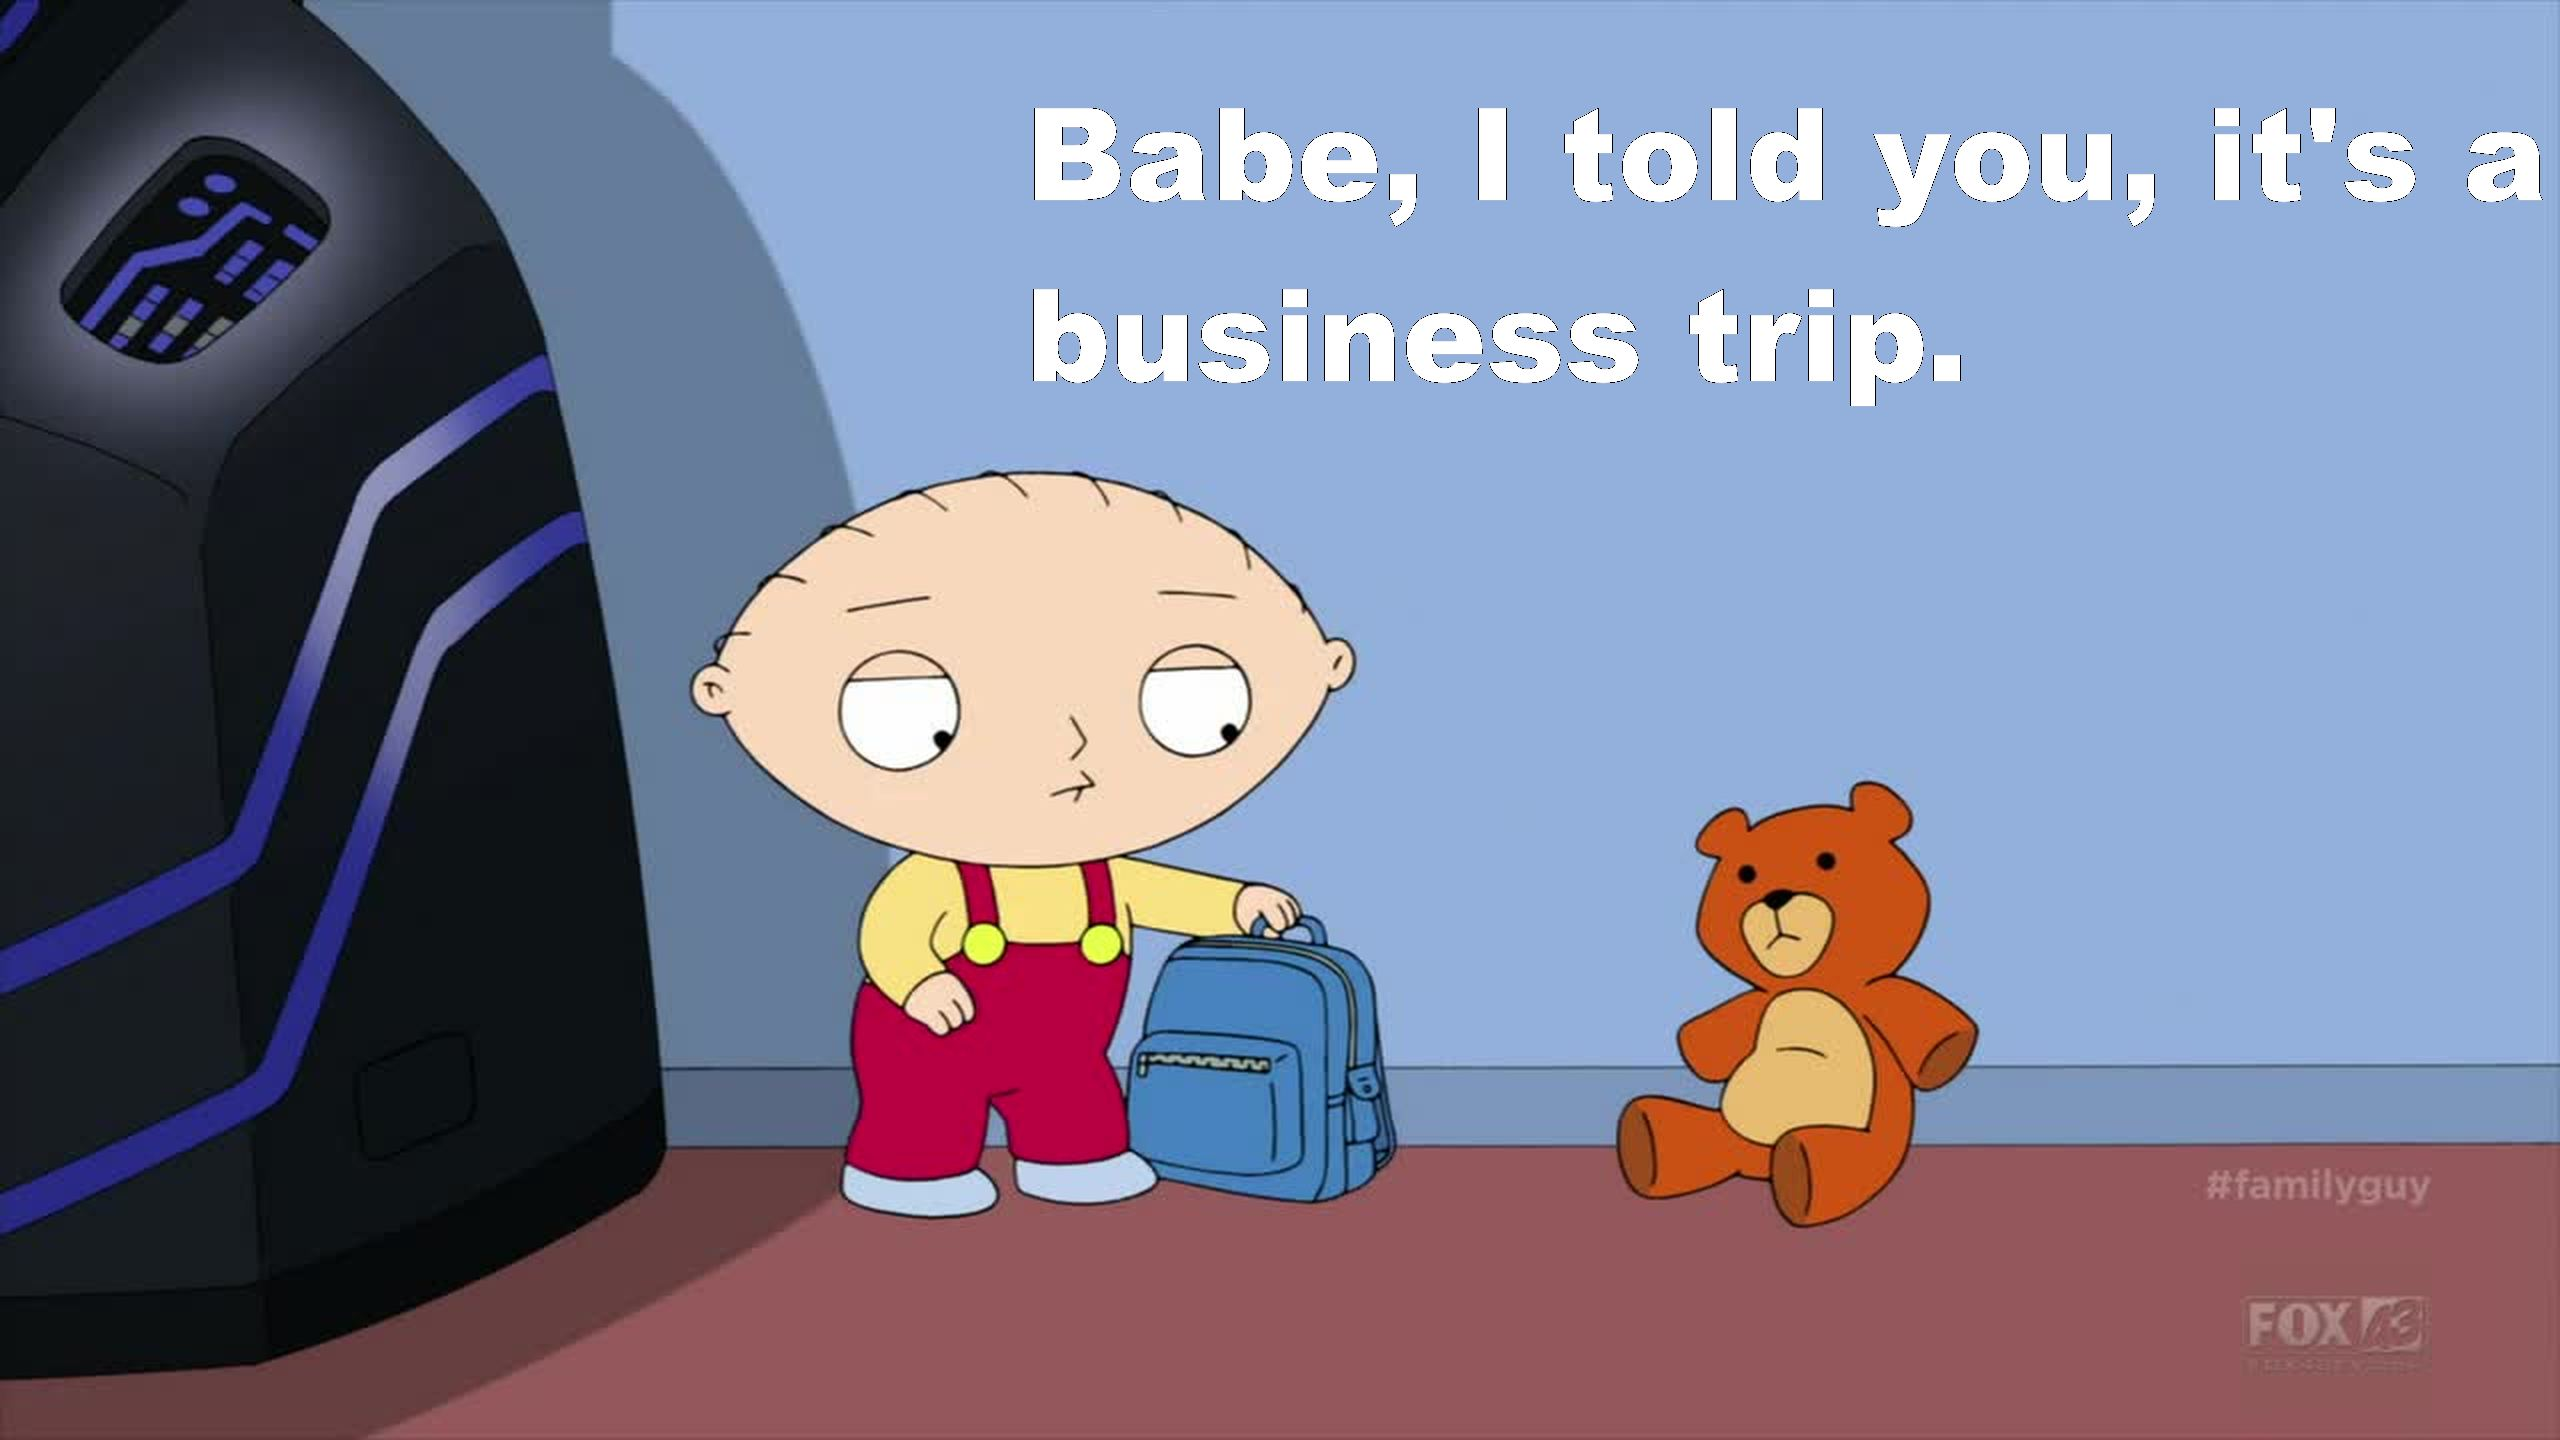 Best Time Travel Family Guy Episodes